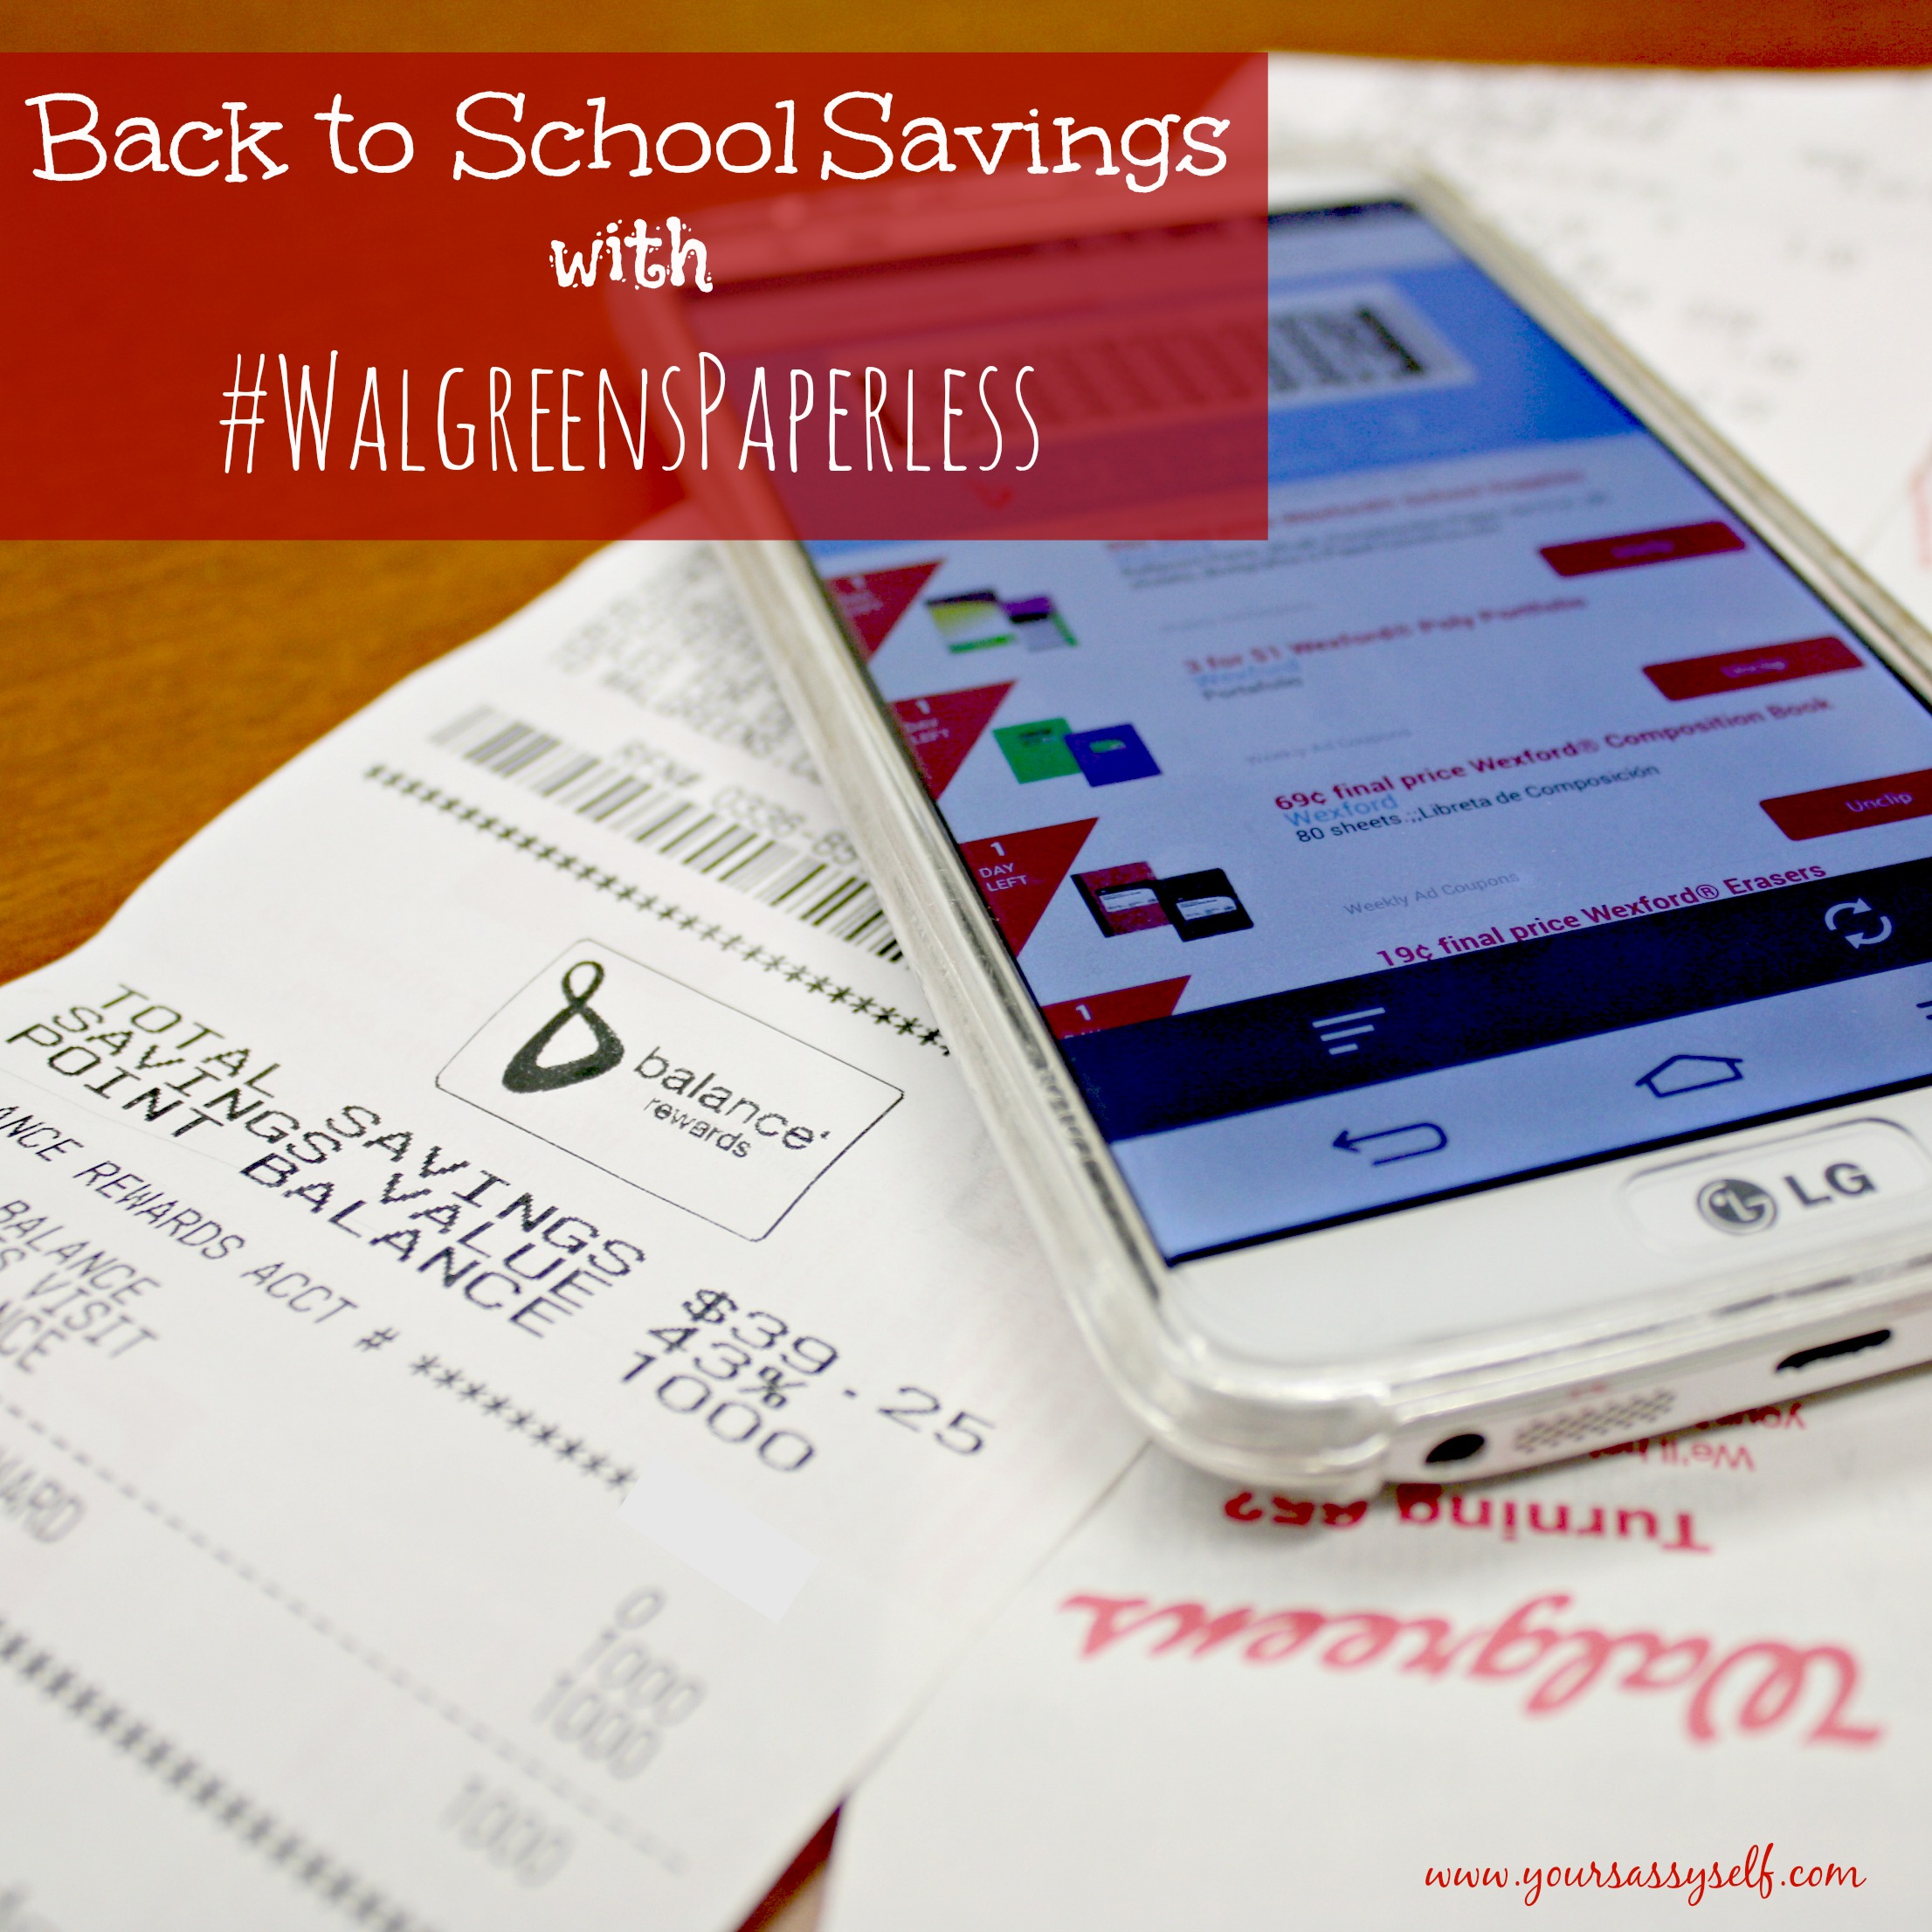 Back to School Savings with #WalgreensPaperless Coupons